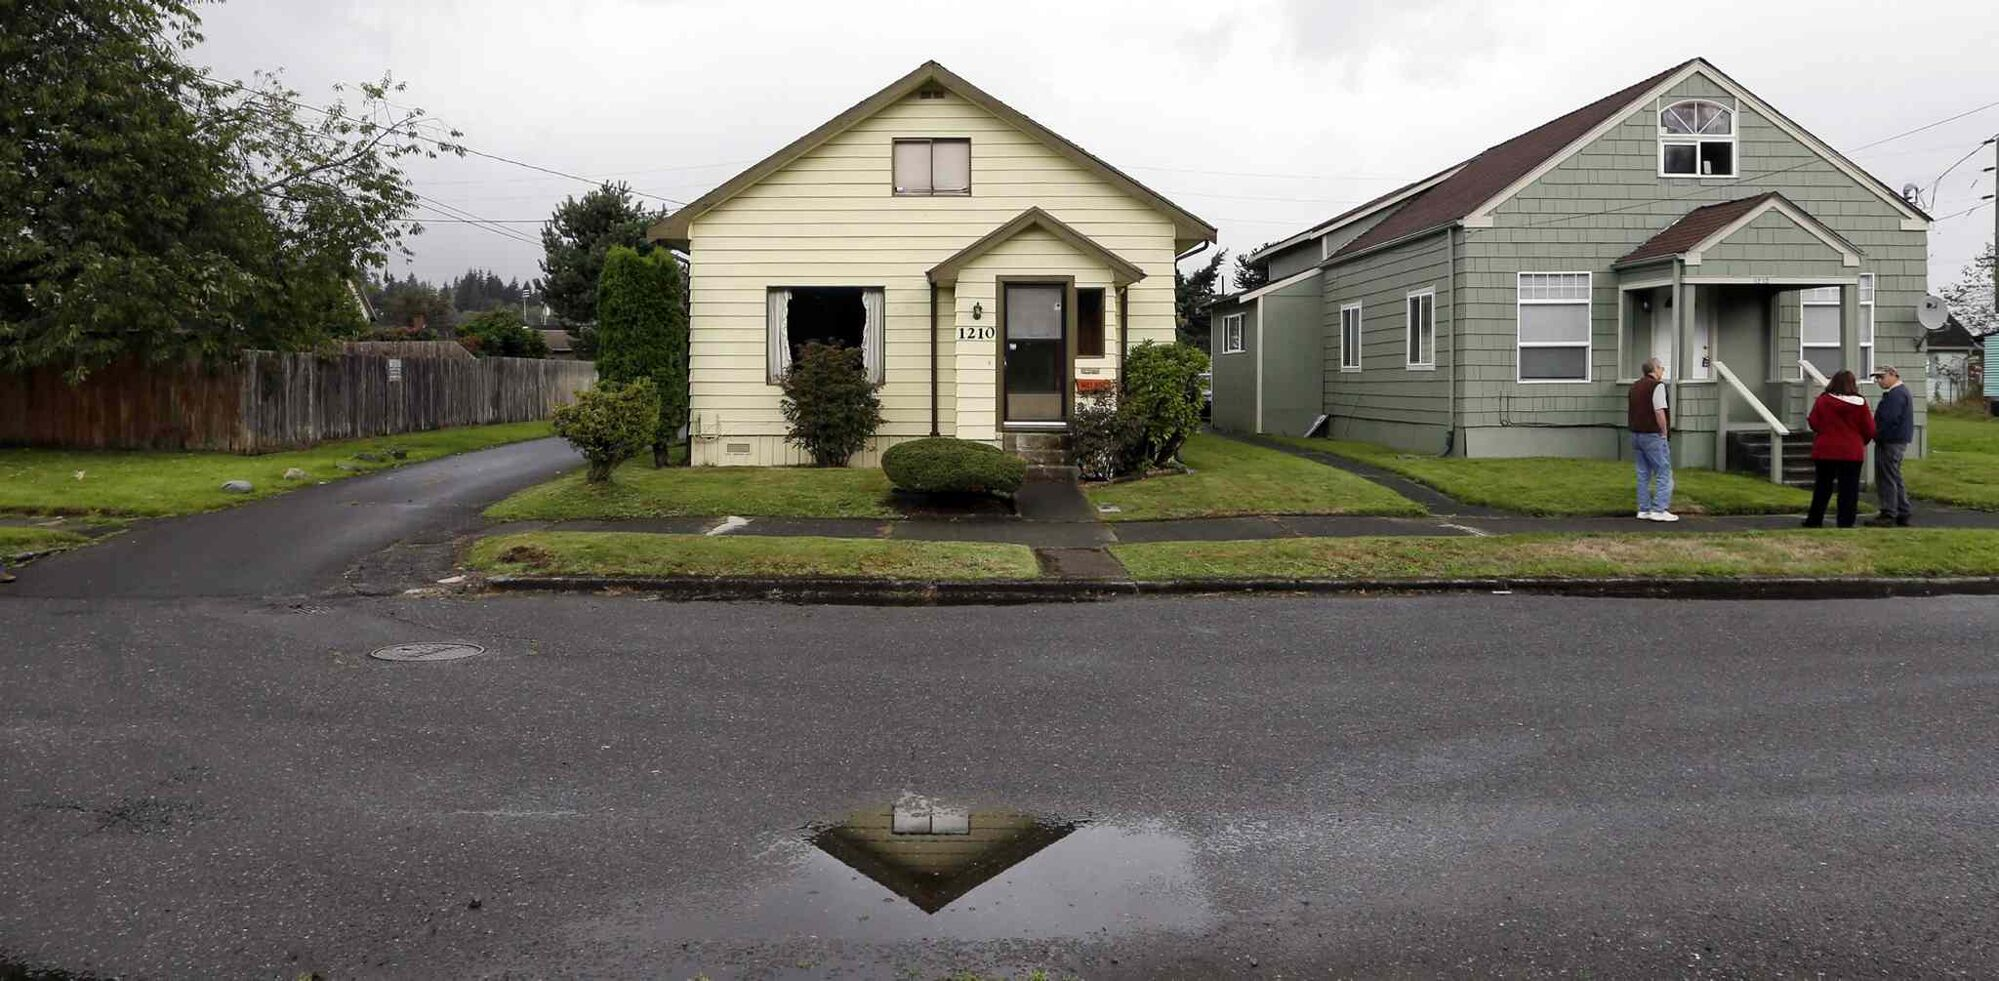 This Monday, Sept. 23, 2013 photo shows the childhood home of Kurt Cobain along an alley in Aberdeen, Wash. (Elaine Thompson / The Associated Press)